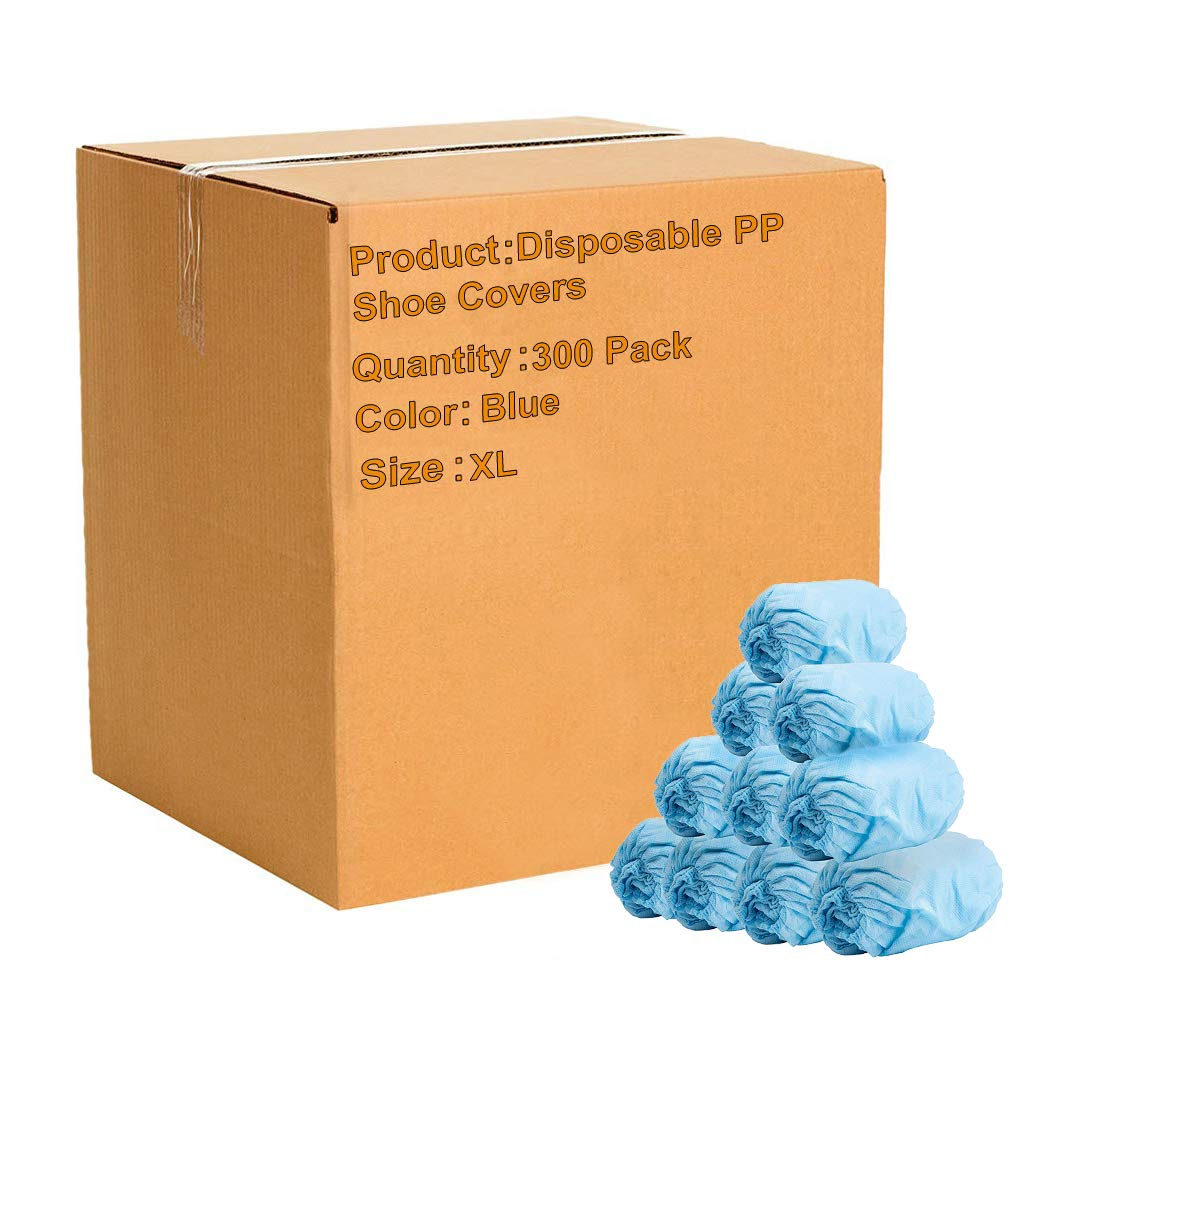 300 Pack of Disposable PP Shoe Covers. Blue Shoe protectors. Premium Quality Protective Shoe Covering. Recyclable Boot Covers. Non-Slip, Heavy-Duty, Thick Protection for Shoes. XL size. Wholesale. by ABC Pack & Supply